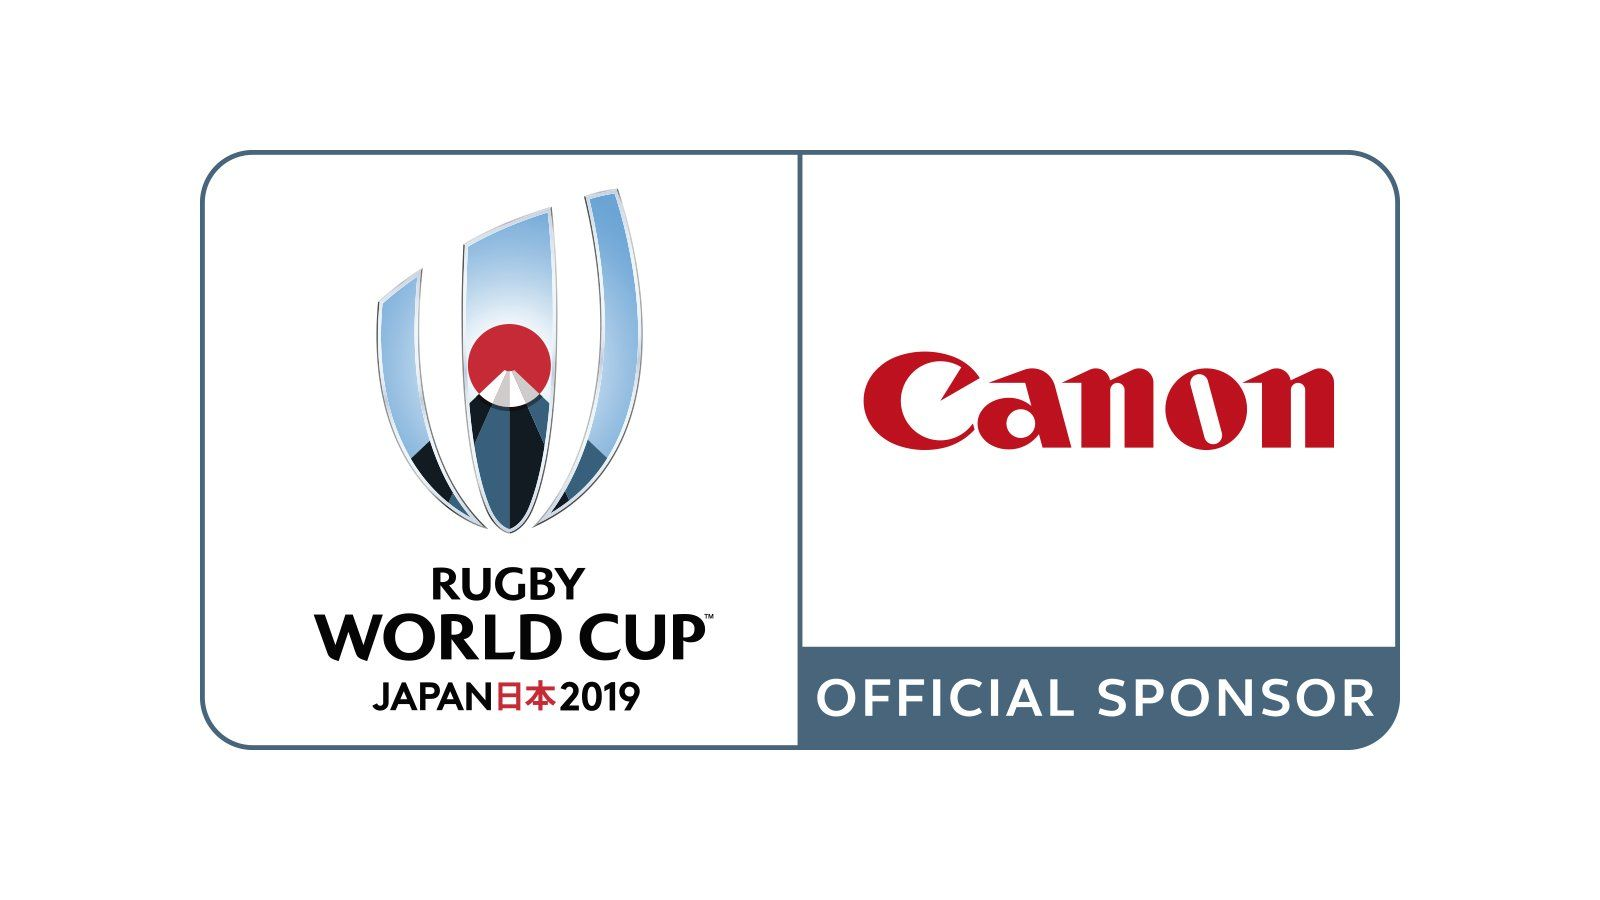 Rugby-world-cup-2019-official-sponsers